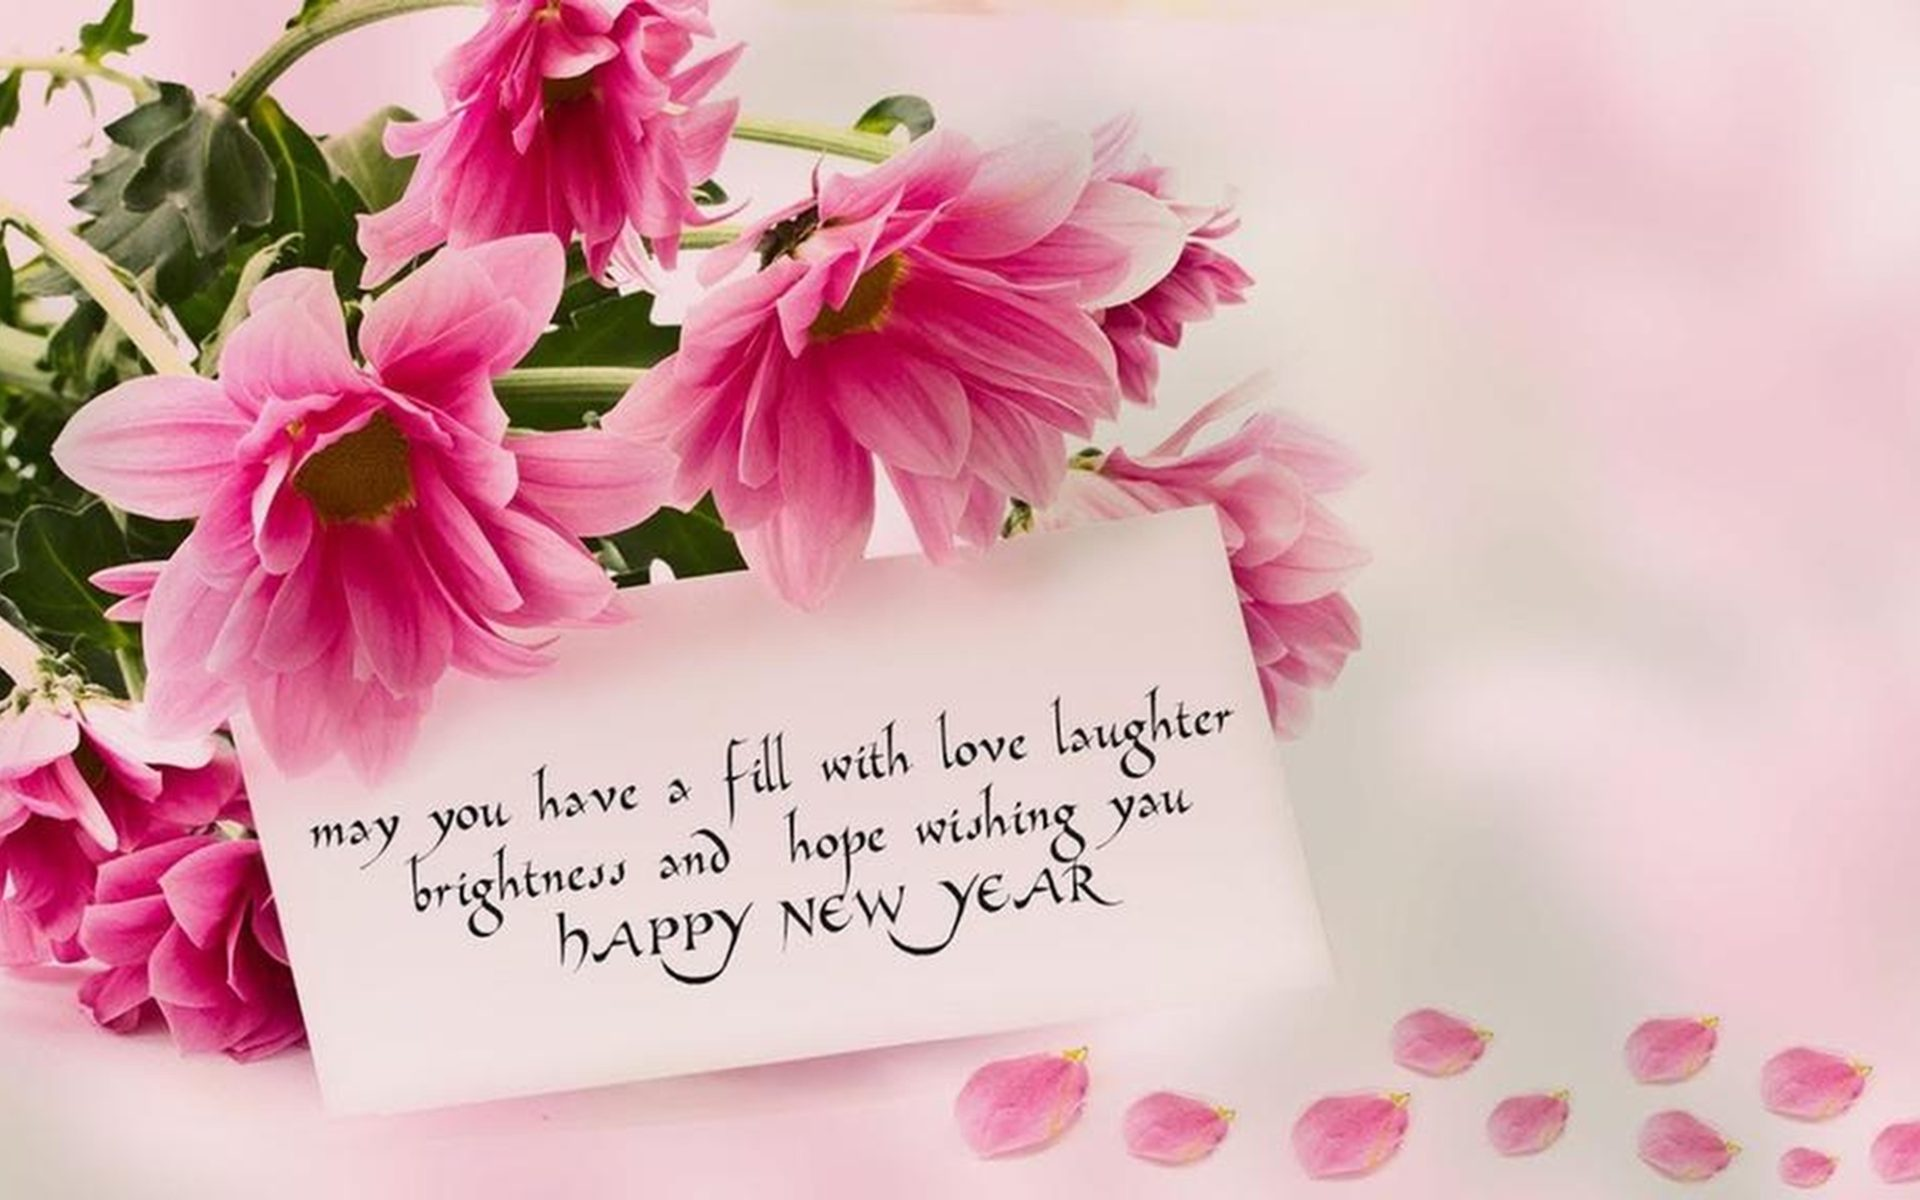 Happy New Year 2020 Rose Flowers Love Wallpapers Hd 5120x2880 1920x1200